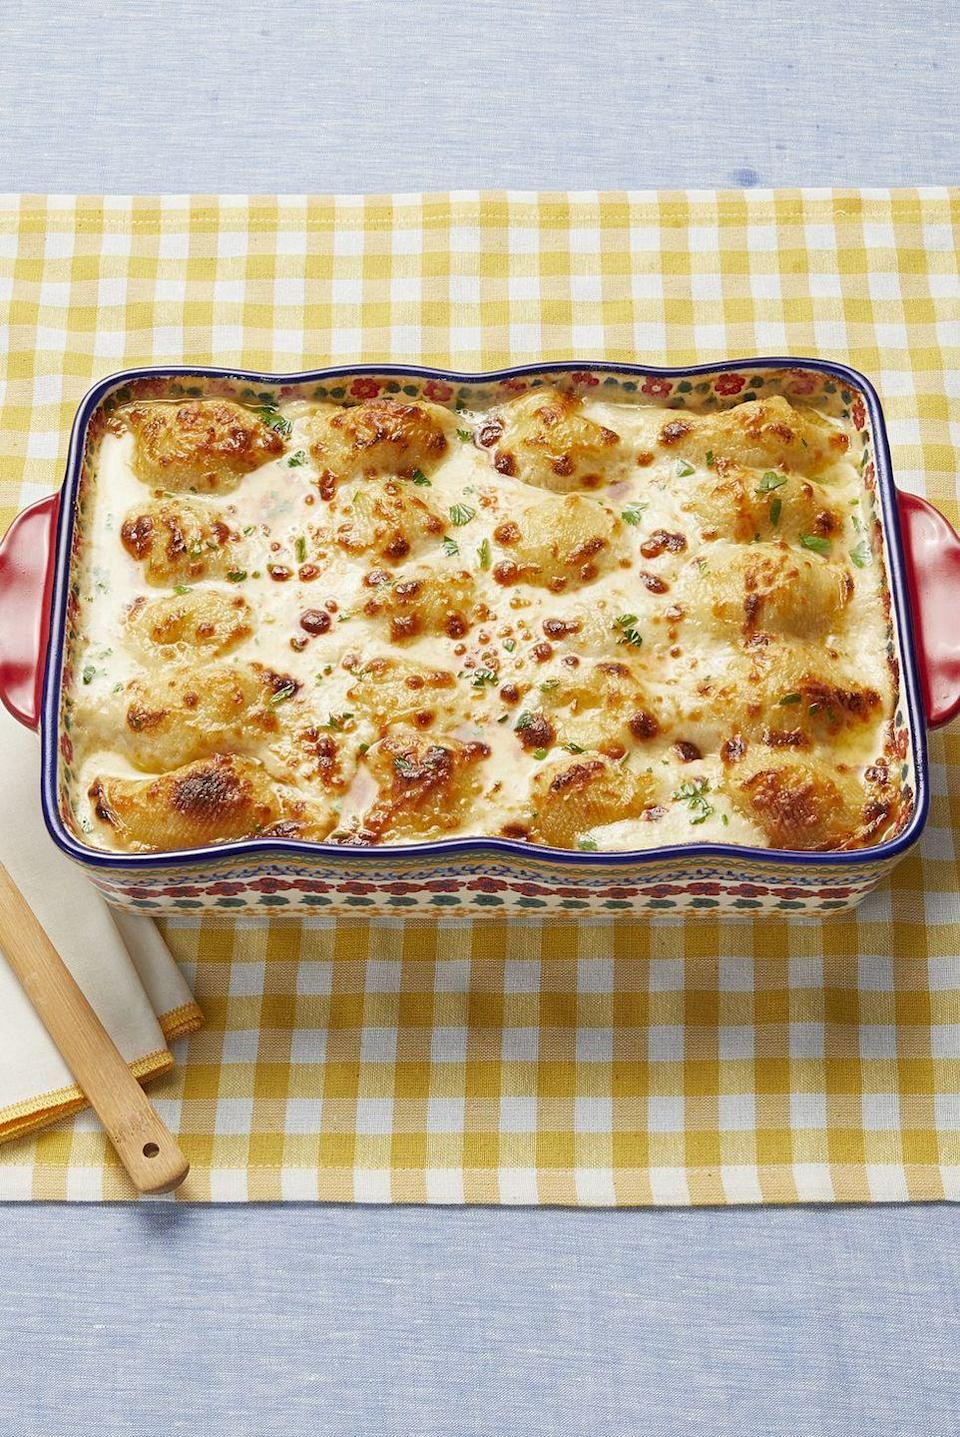 "<p>Make a hearty family meal on Christmas Eve with this classic pasta bake. Nothing says comfort food like chicken Alfredo and stuffed shells!</p><p><strong><a href=""https://www.thepioneerwoman.com/food-cooking/recipes/a97301/chicken-alfredo-stuffed-shells/"" rel=""nofollow noopener"" target=""_blank"" data-ylk=""slk:Get the recipe"" class=""link rapid-noclick-resp"">Get the recipe</a>.</strong></p><p><a class=""link rapid-noclick-resp"" href=""https://go.redirectingat.com?id=74968X1596630&url=https%3A%2F%2Fwww.walmart.com%2Fsearch%2F%3Fquery%3Dbaking%2Bdishes&sref=https%3A%2F%2Fwww.thepioneerwoman.com%2Ffood-cooking%2Fmeals-menus%2Fg35589850%2Fmothers-day-dinner-ideas%2F"" rel=""nofollow noopener"" target=""_blank"" data-ylk=""slk:SHOP BAKING DISHES"">SHOP BAKING DISHES</a></p>"